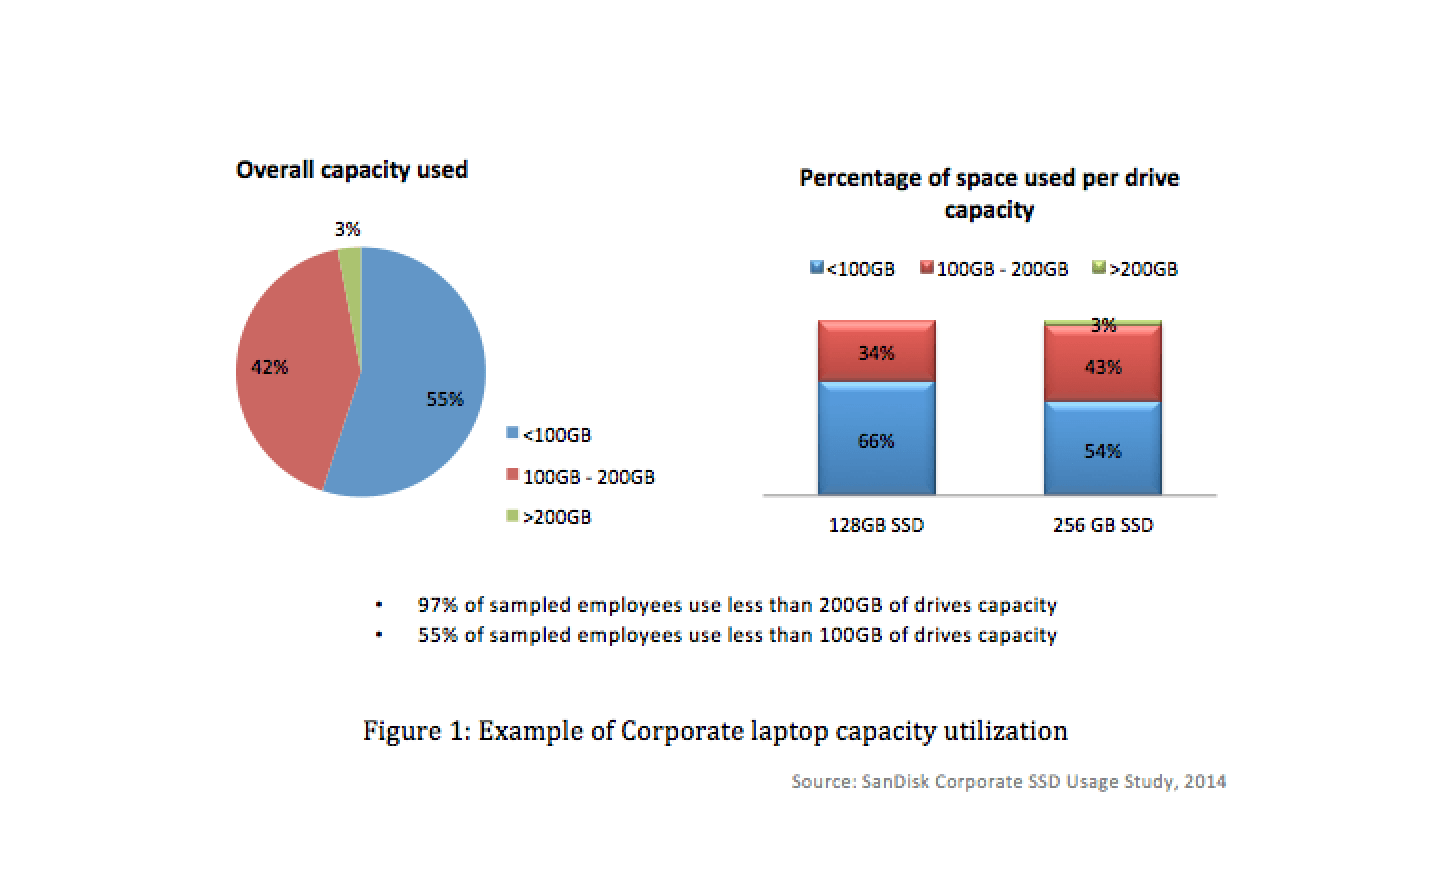 Corporate laptop capacity utilization